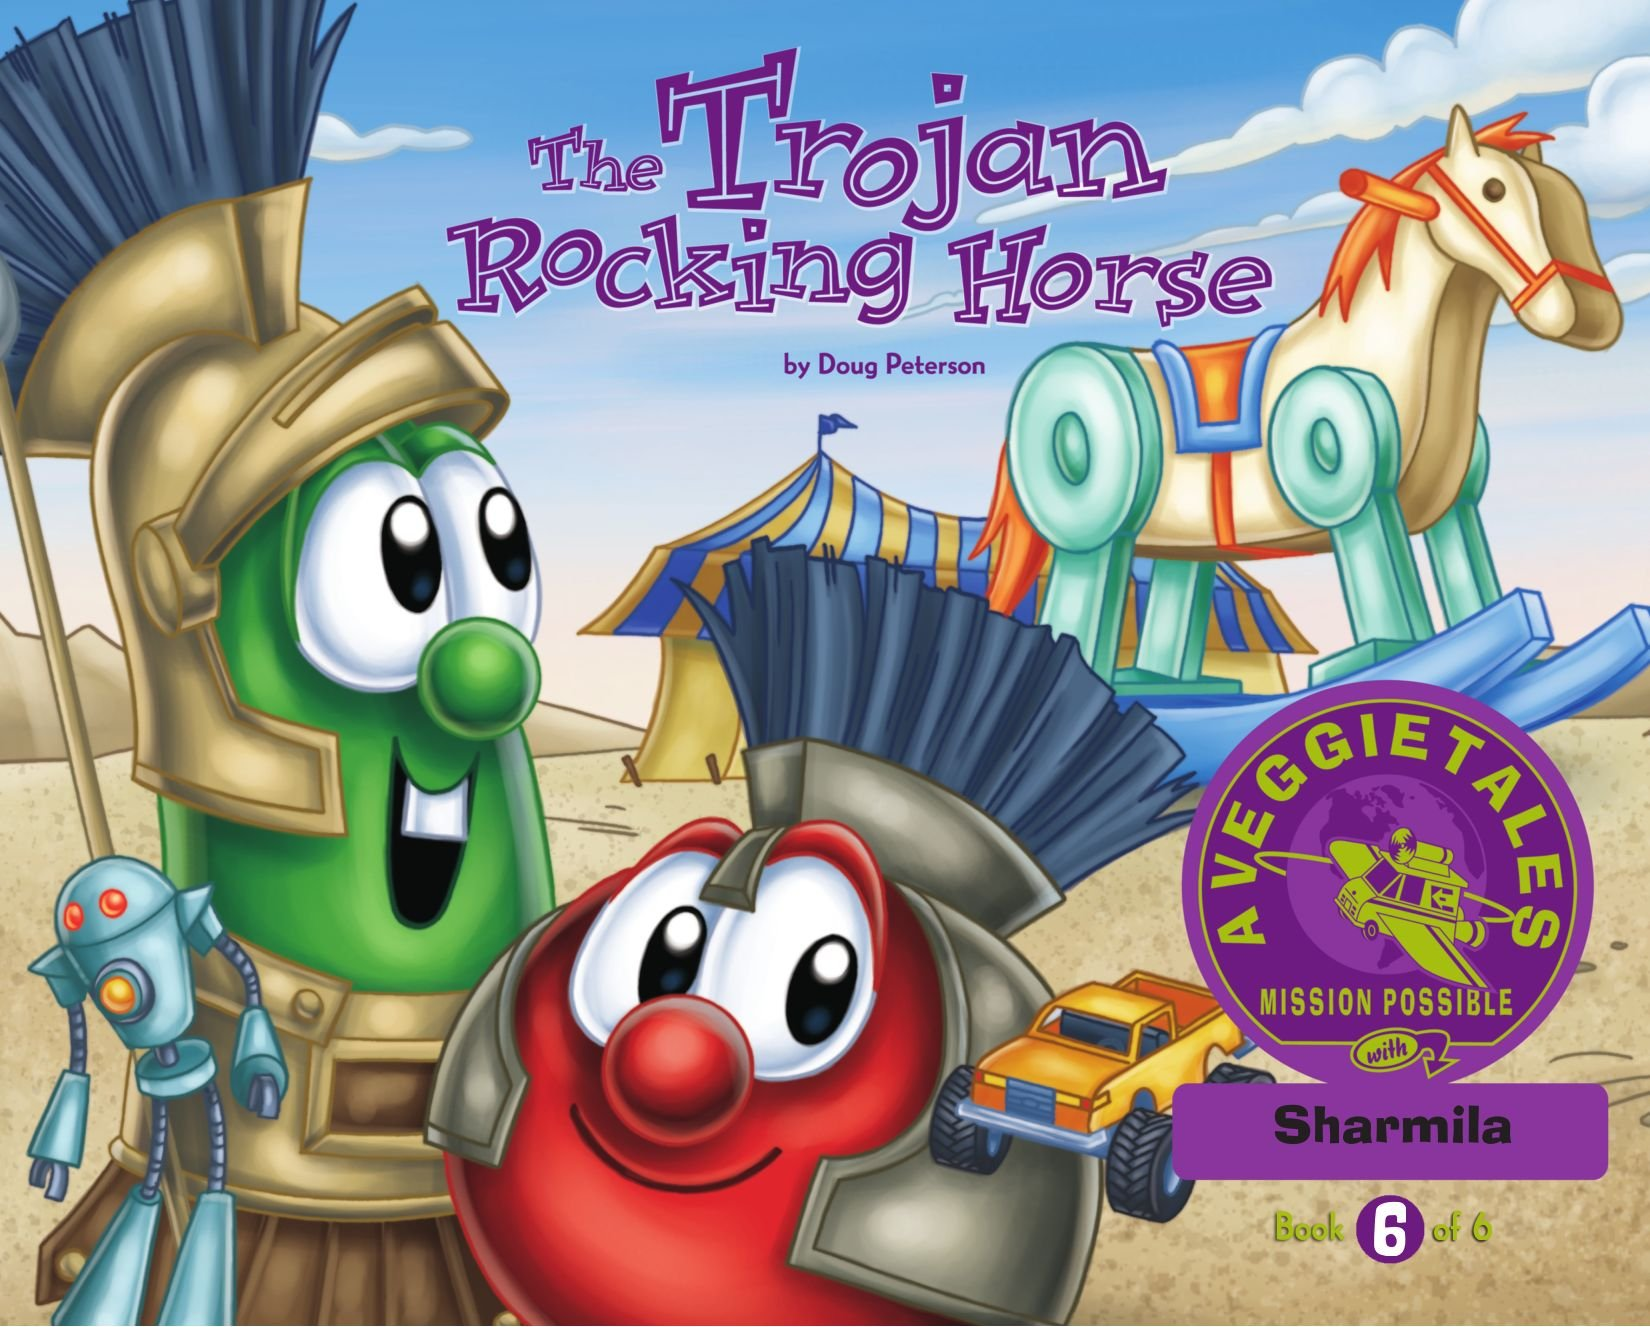 Download The Trojan Rocking Horse - VeggieTales Mission Possible Adventure Series #6: Personalized for Sharmila (Girl) pdf